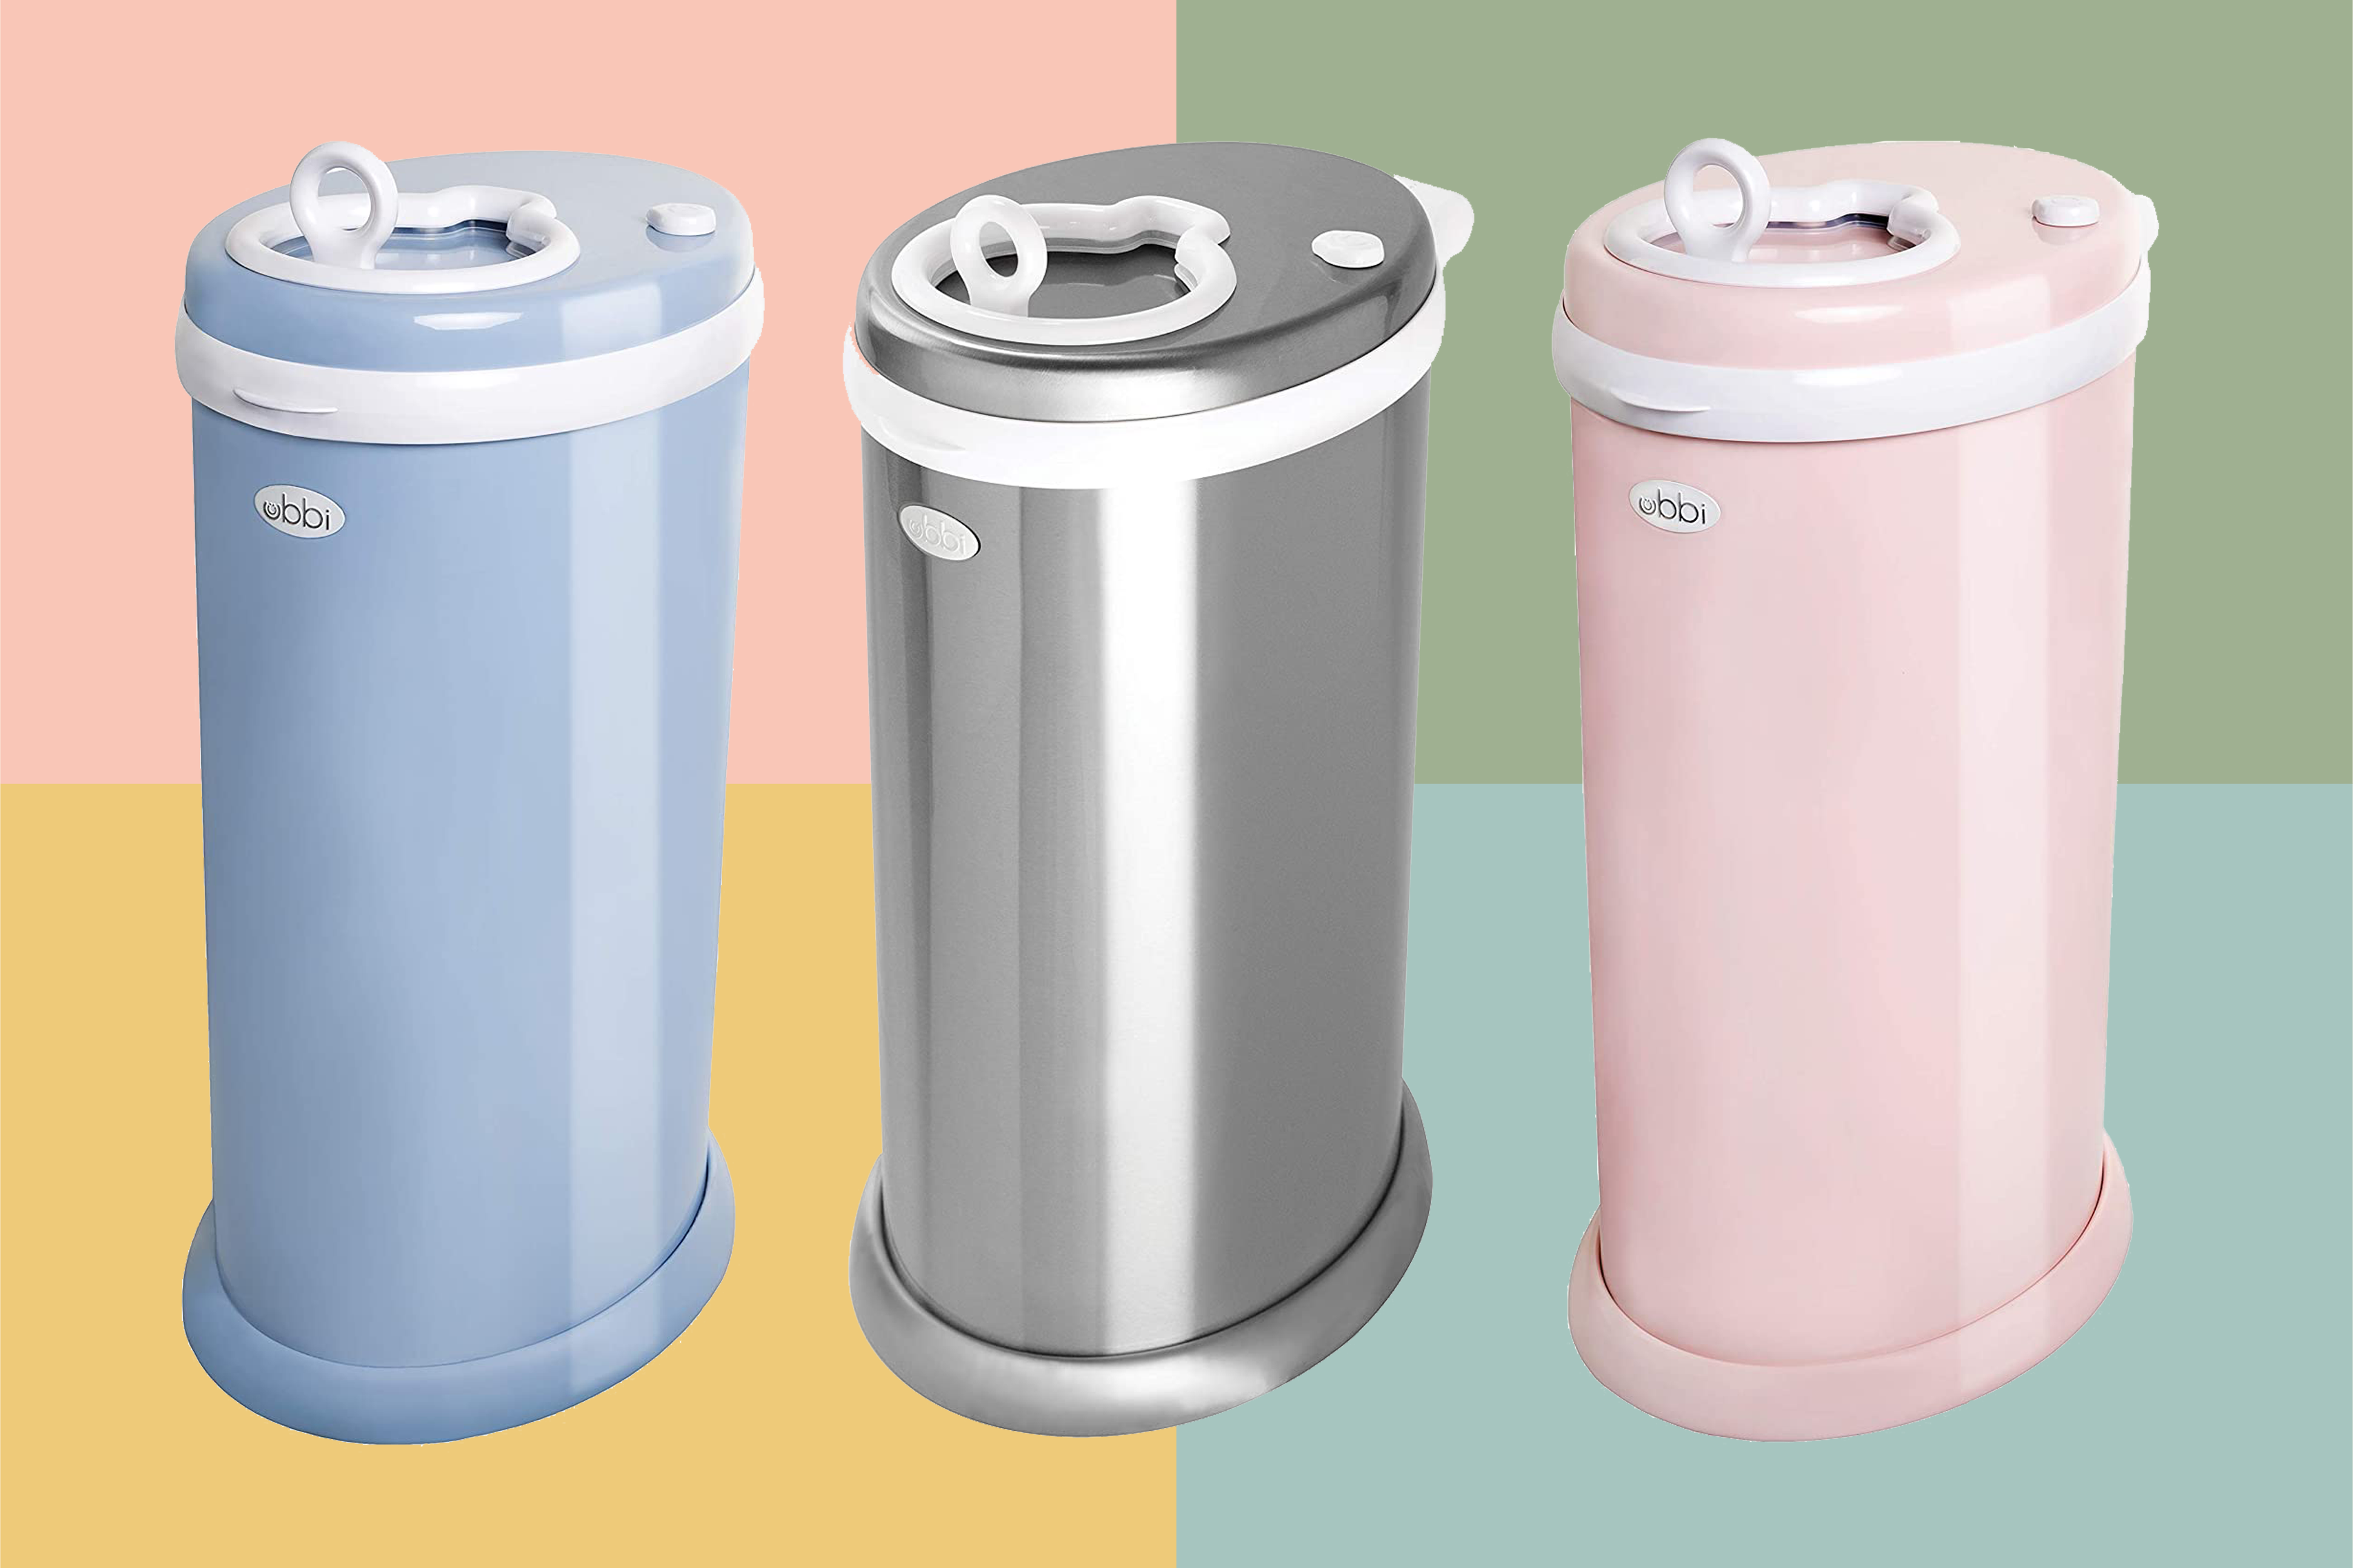 waste disposal cans